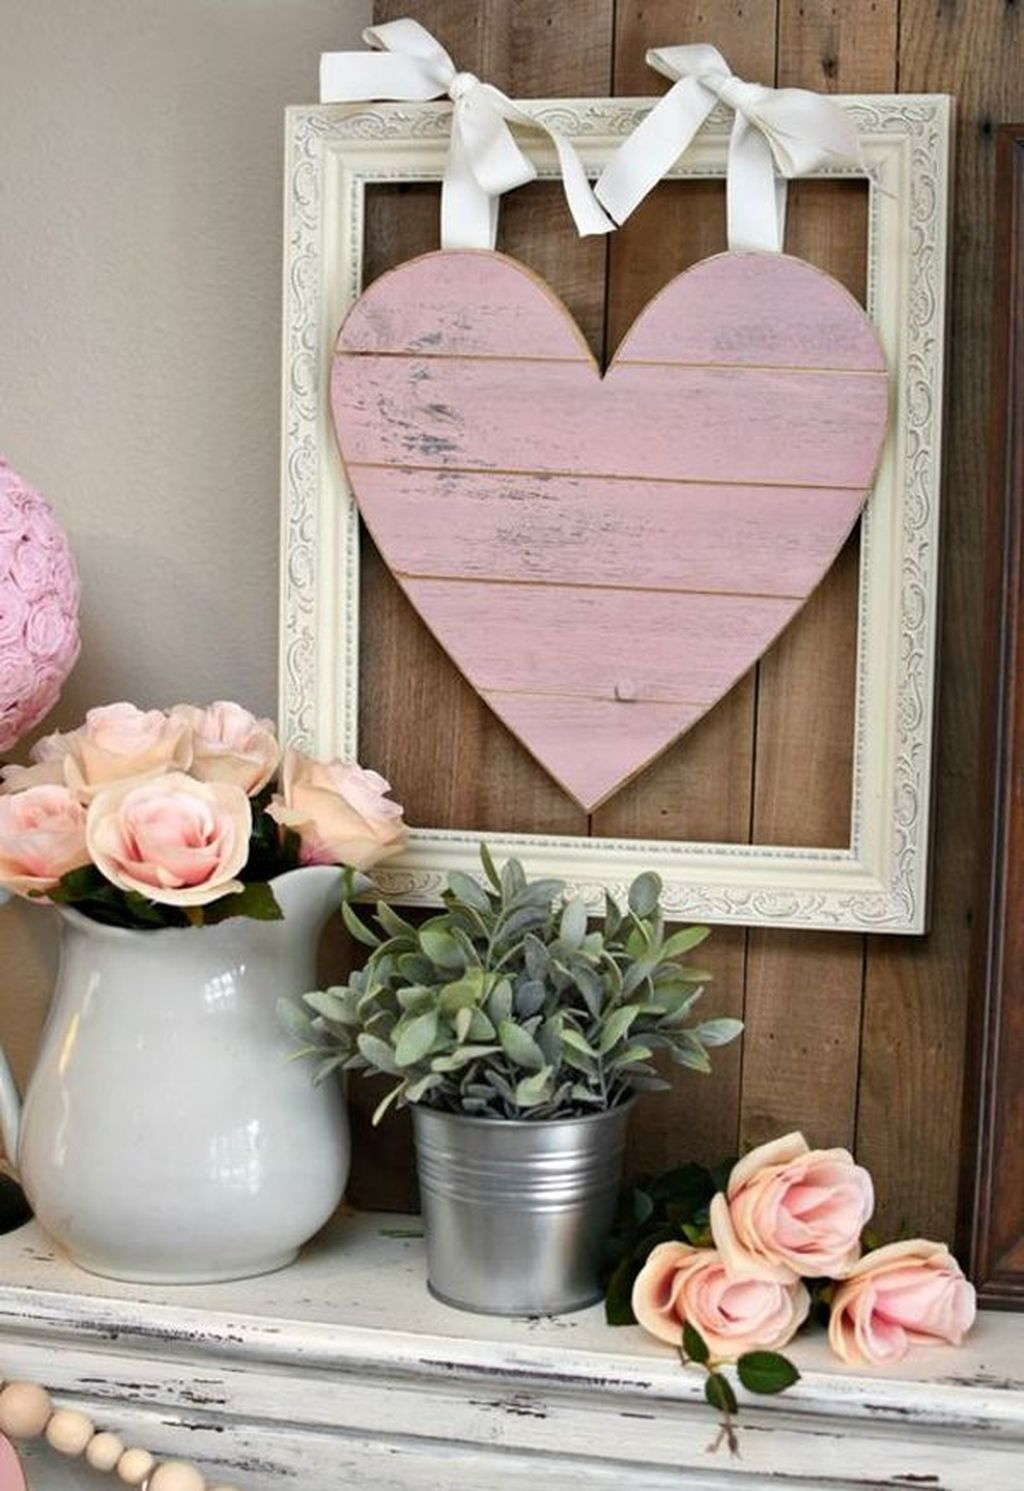 Amazing Valentine Interior Decor Ideas Trend 2020 01